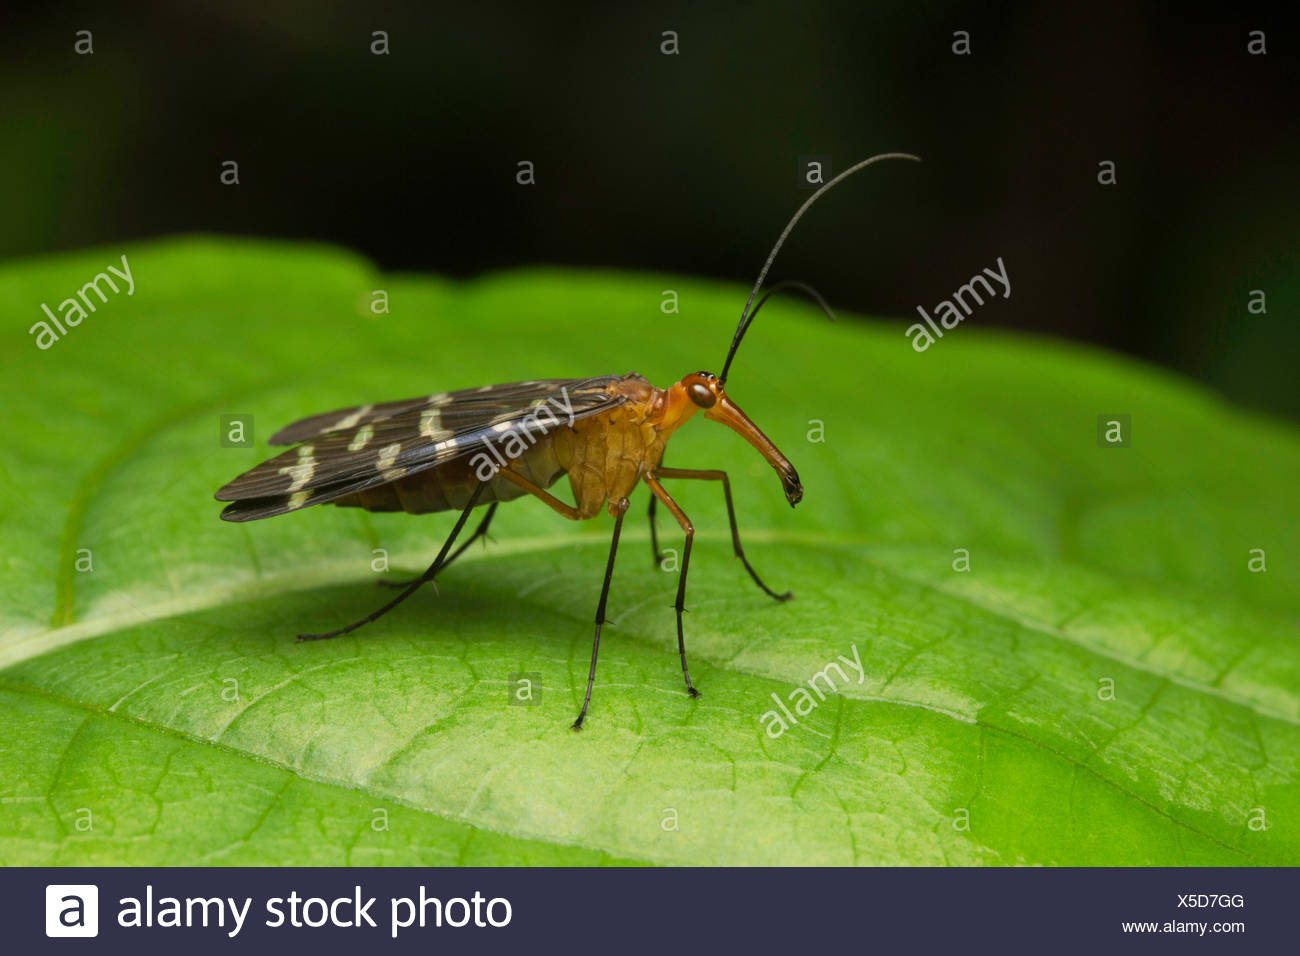 Scorpion fly , Aarey Milk Colony , INDIA. Scorpion flies are so called due to the males of one family Panorpidae having enlarged abdomen and genitalia - Stock Image